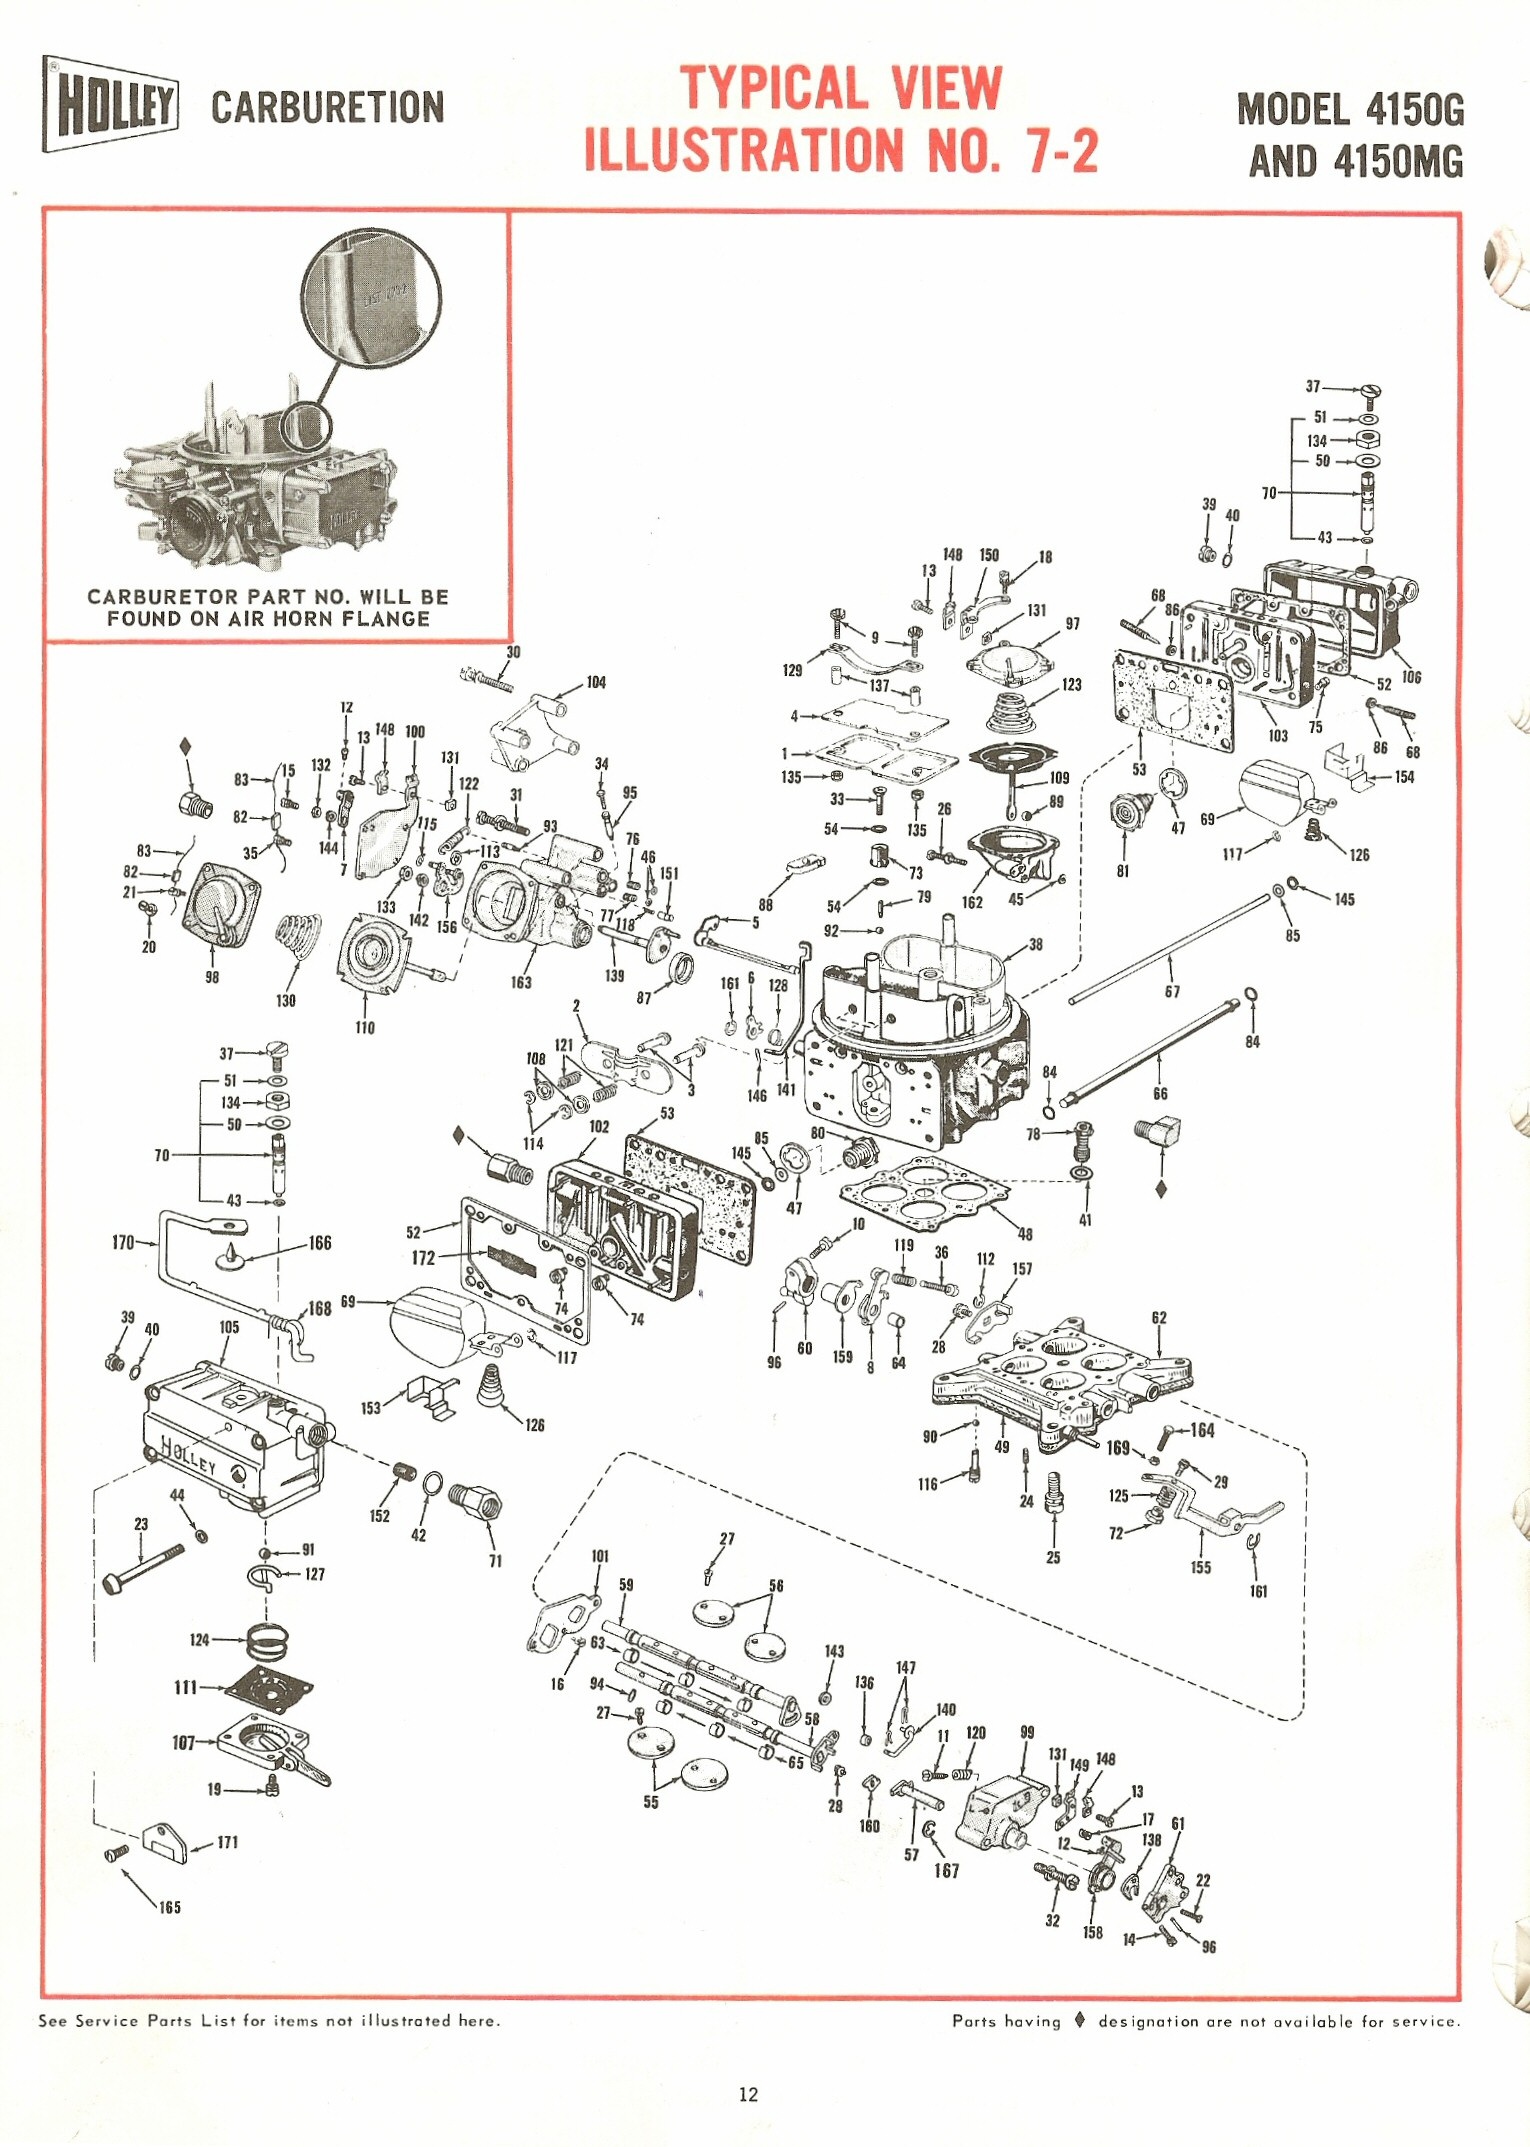 hight resolution of holley carburetor diagram wiring diagram for you holley carburetor vacuum diagram holley 4150g and 4150mg exploded